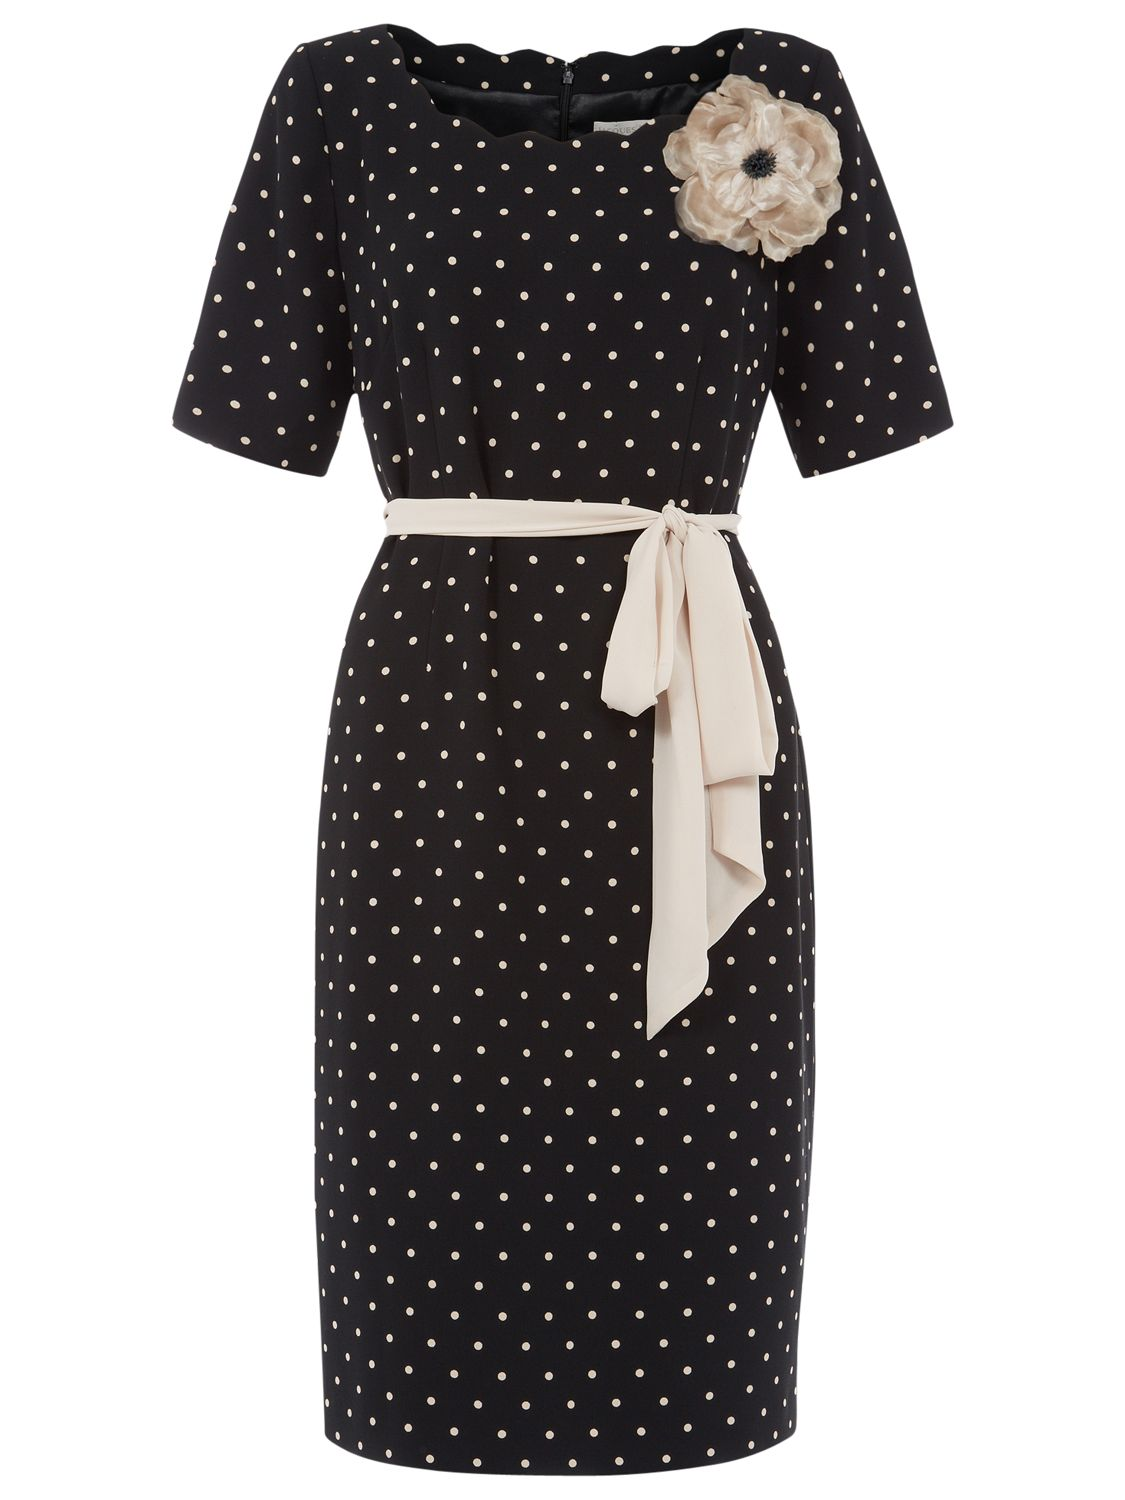 jacques vert spot crepe belted dress black, jacques, vert, spot, crepe, belted, dress, black, jacques vert, 12|10, clearance, womenswear offers, womens dresses offers, special offers, women, plus size, inactive womenswear, new reductions, womens dresses, 1654392